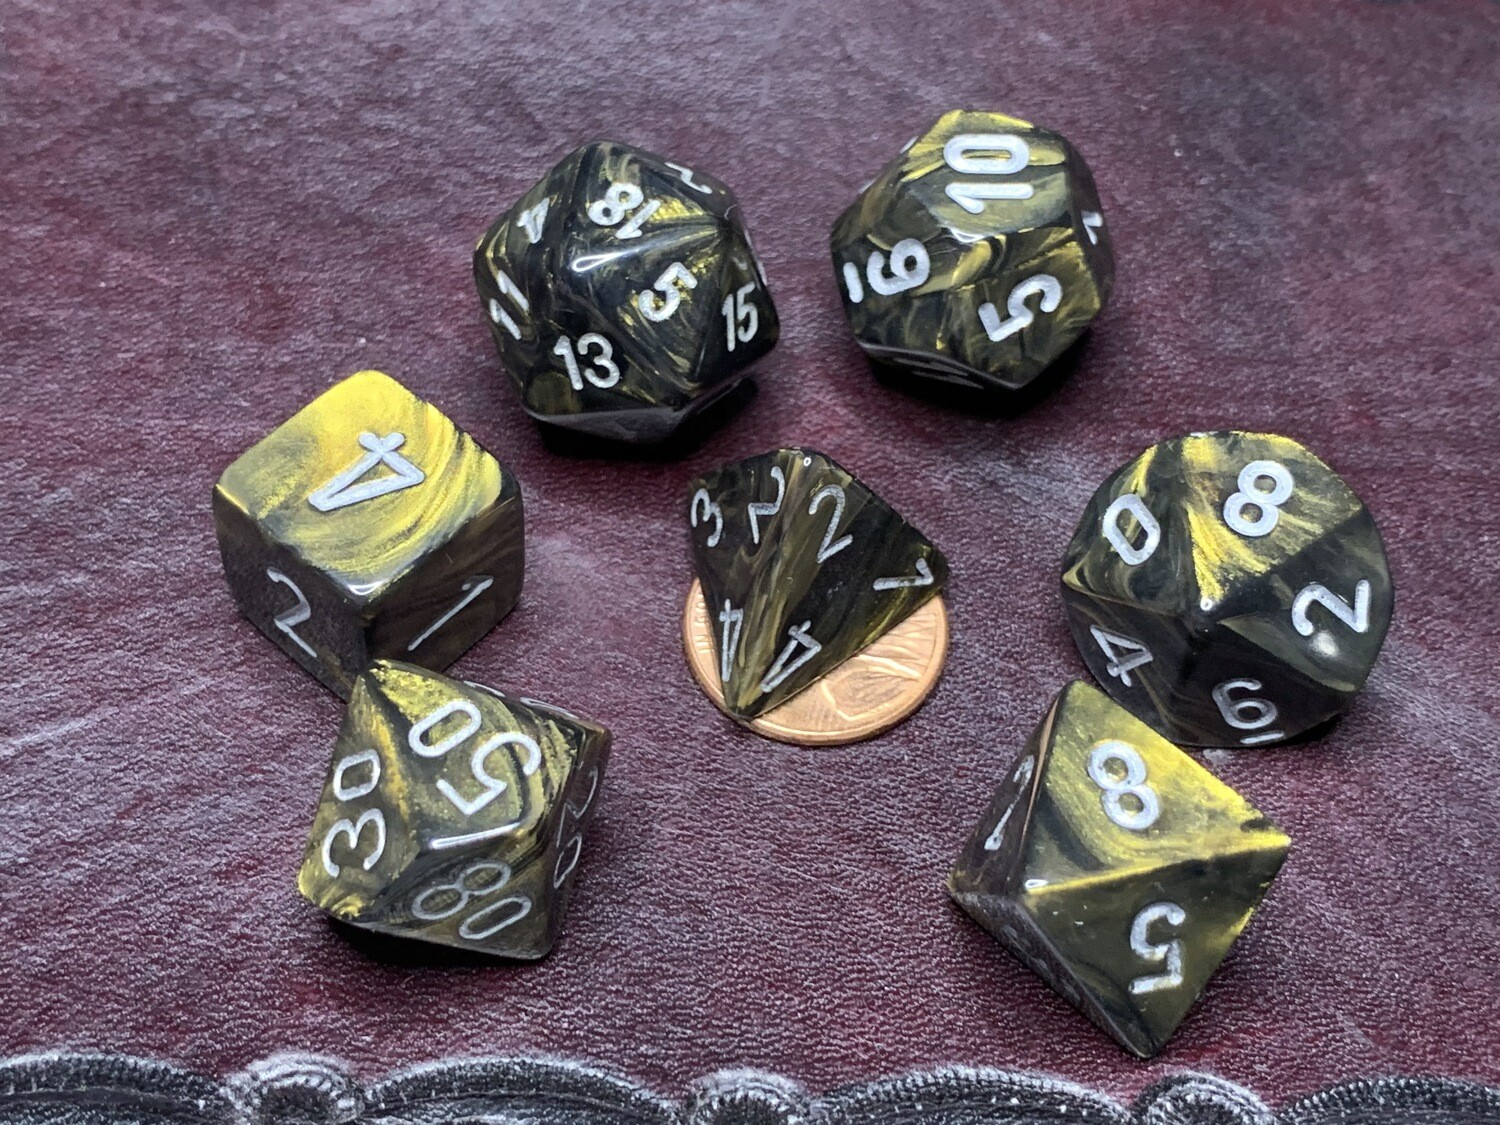 7 Die Dice Polyhedral Set - Chessex Leaf Black and Gold with Silver RPG Gaming